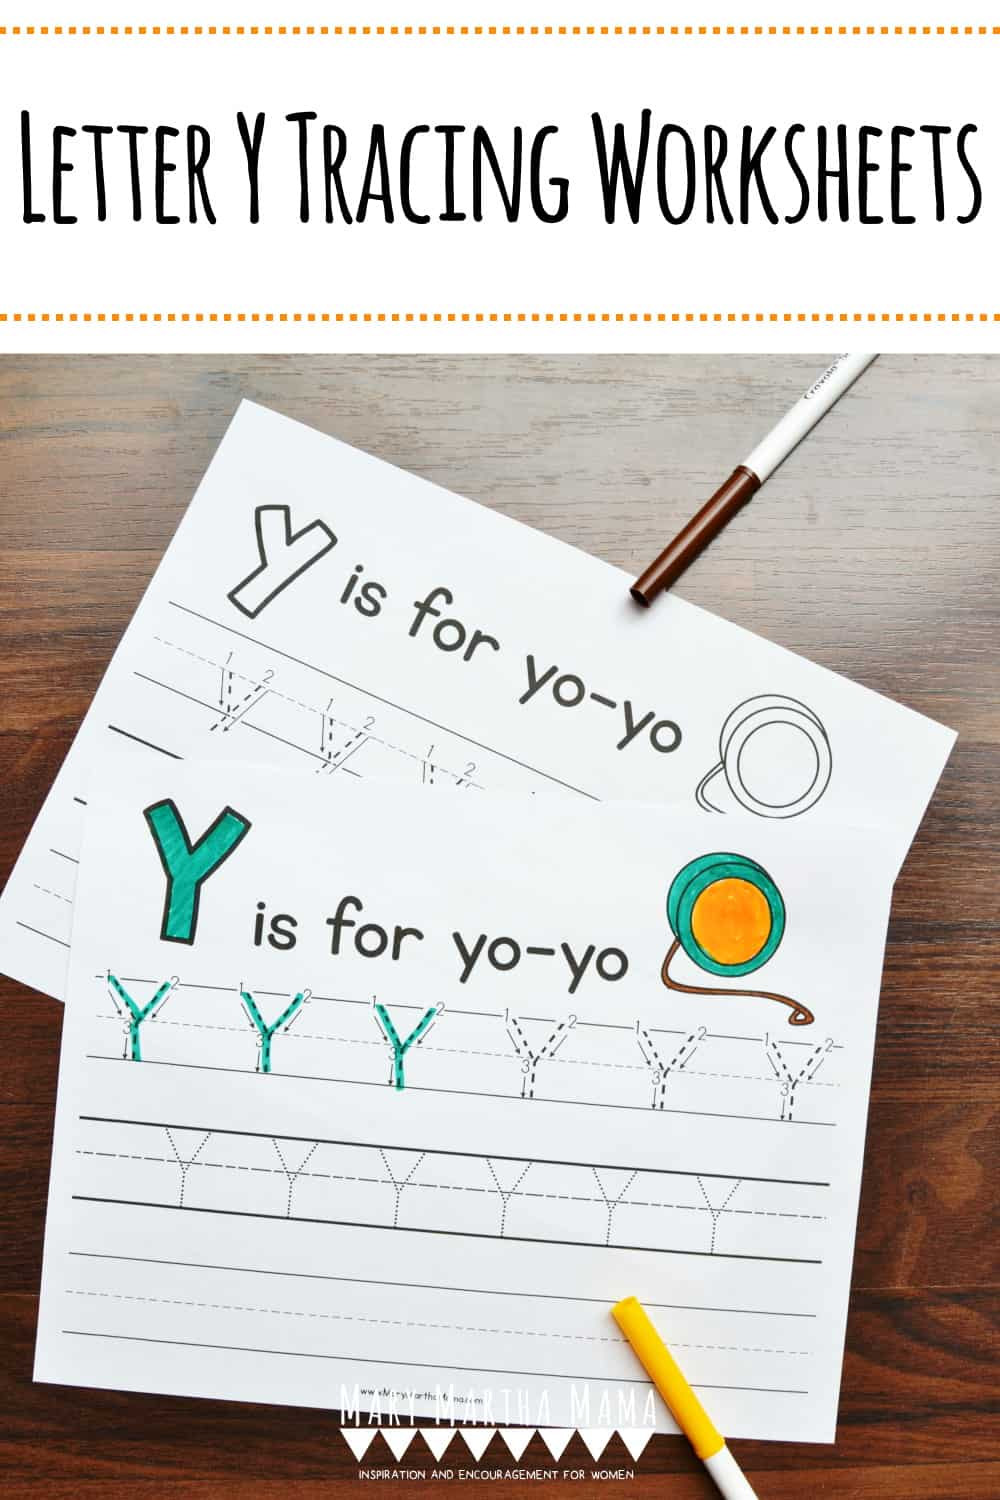 Use these free printable Letter Y Tracing Worksheets to help your kiddo learn proper letter formation for upper and lower case Y.